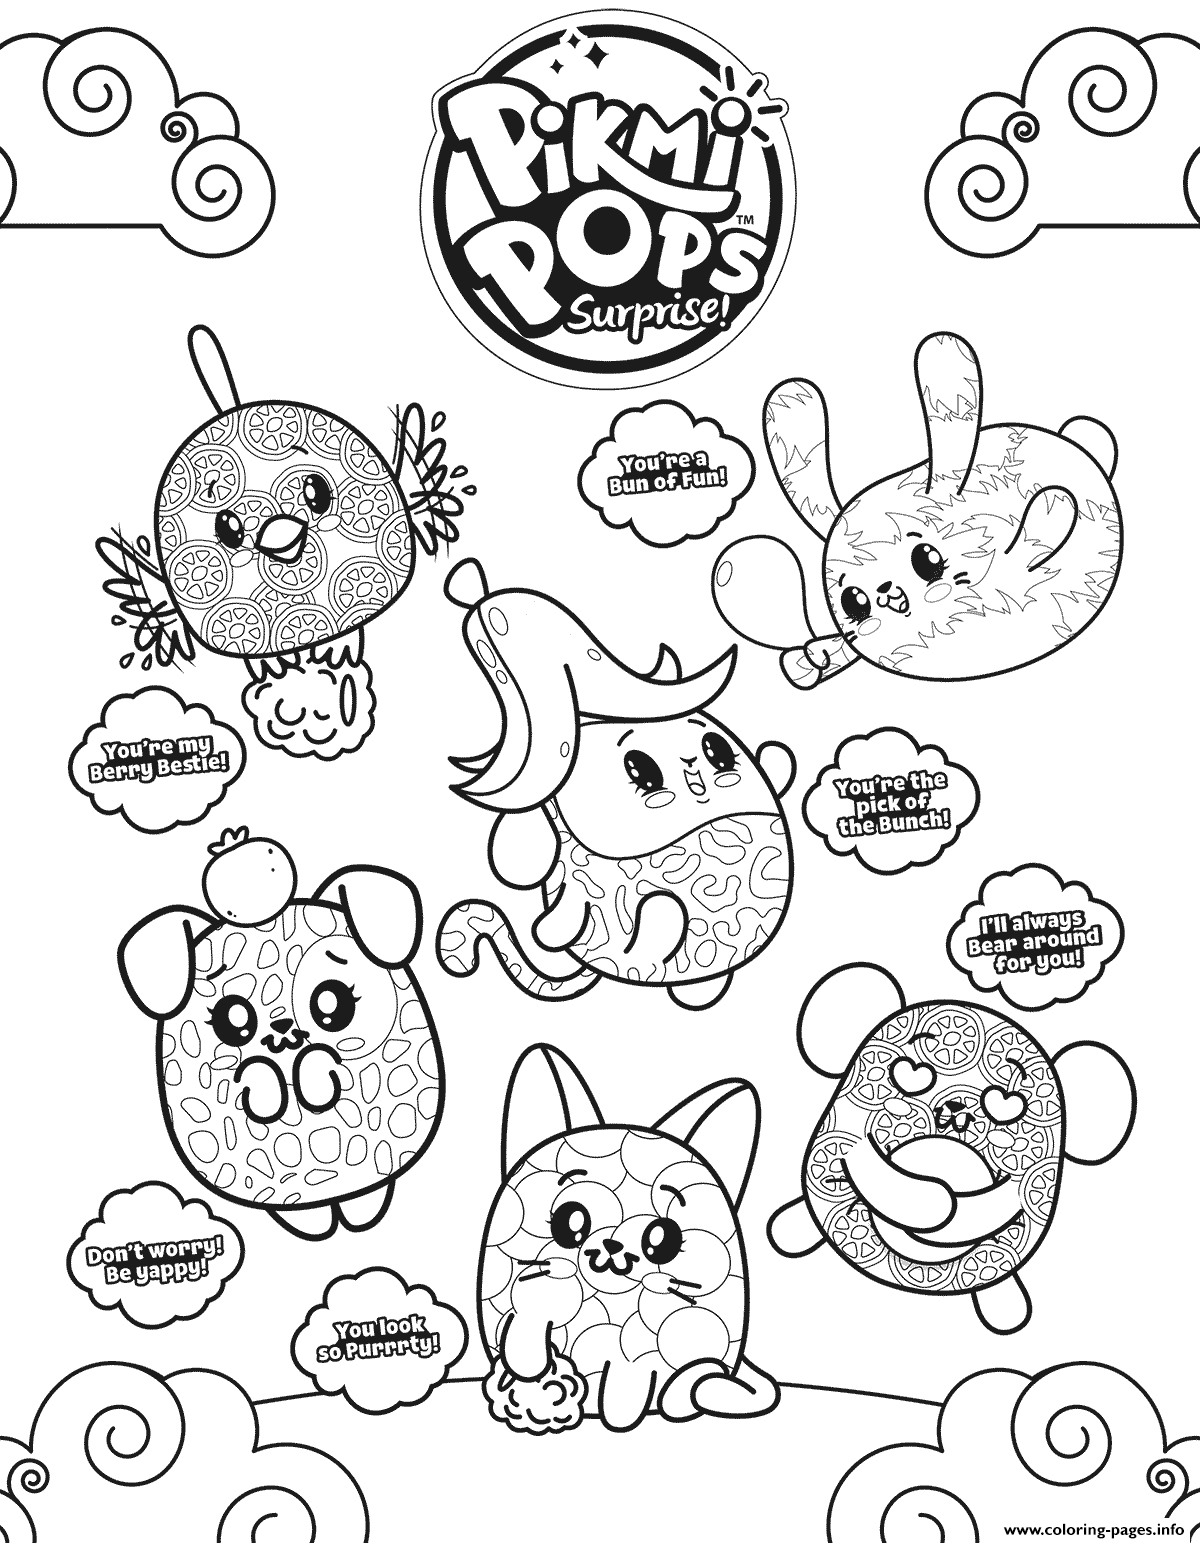 pikmi pops coloring pages Pikmi Pops Coloring Pages Printable pikmi pops coloring pages